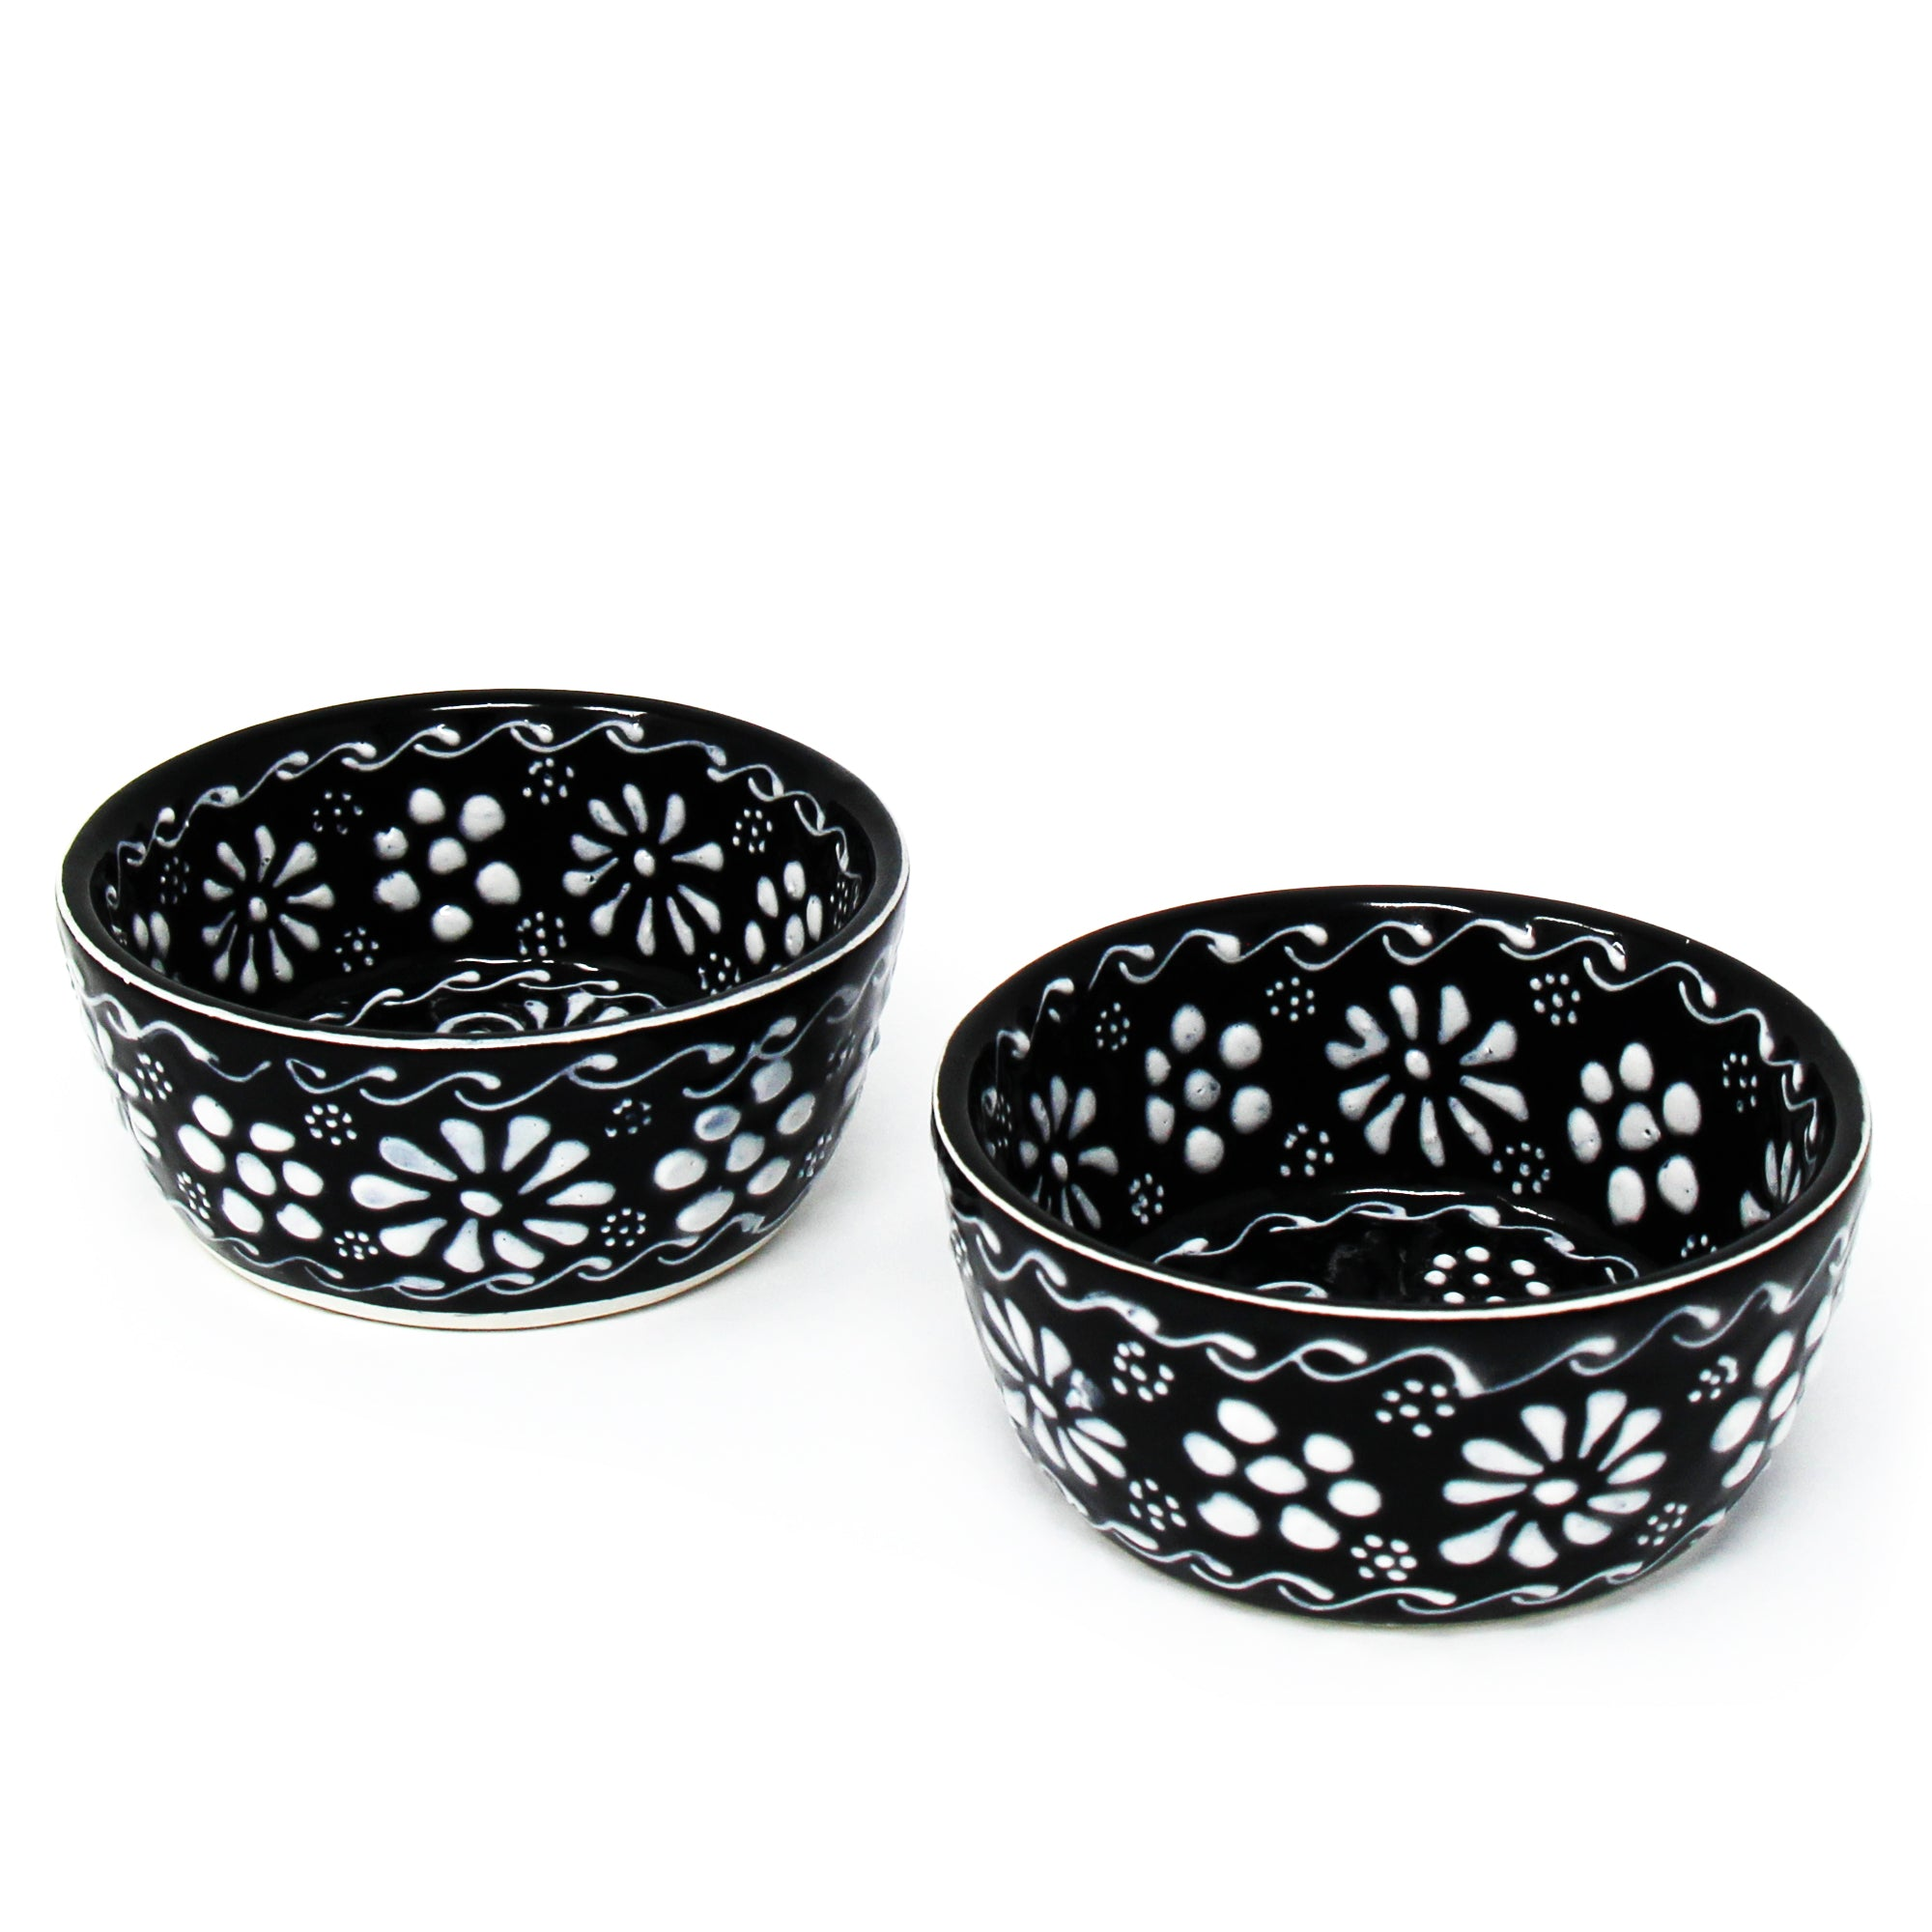 Set of 2 Encantada Handmade Pottery Appetizer & Dip Bowl, Ink